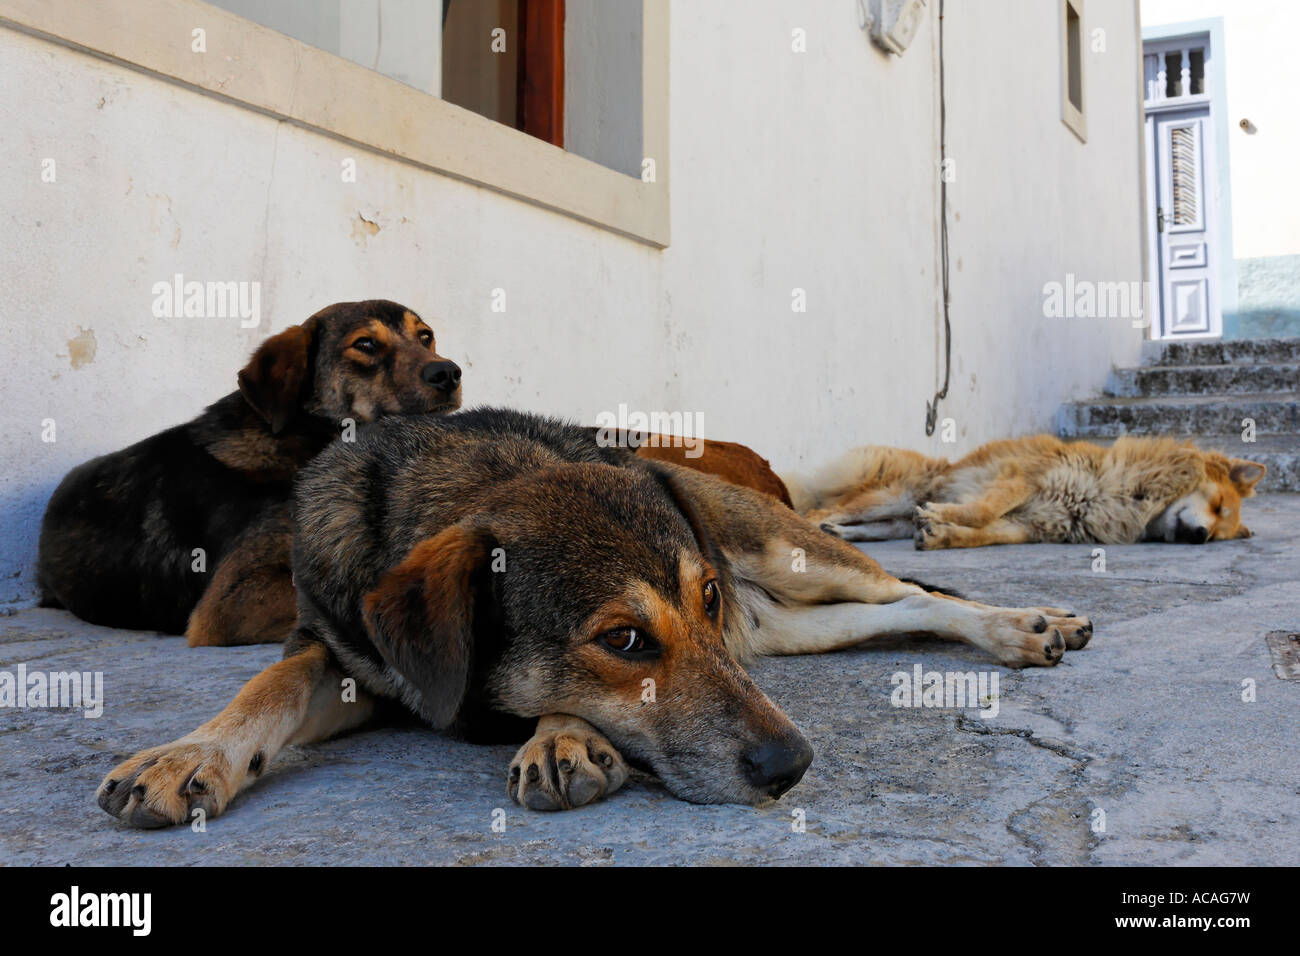 Dogs outside a house in Santorin in the Aegean, Greece - Stock Image